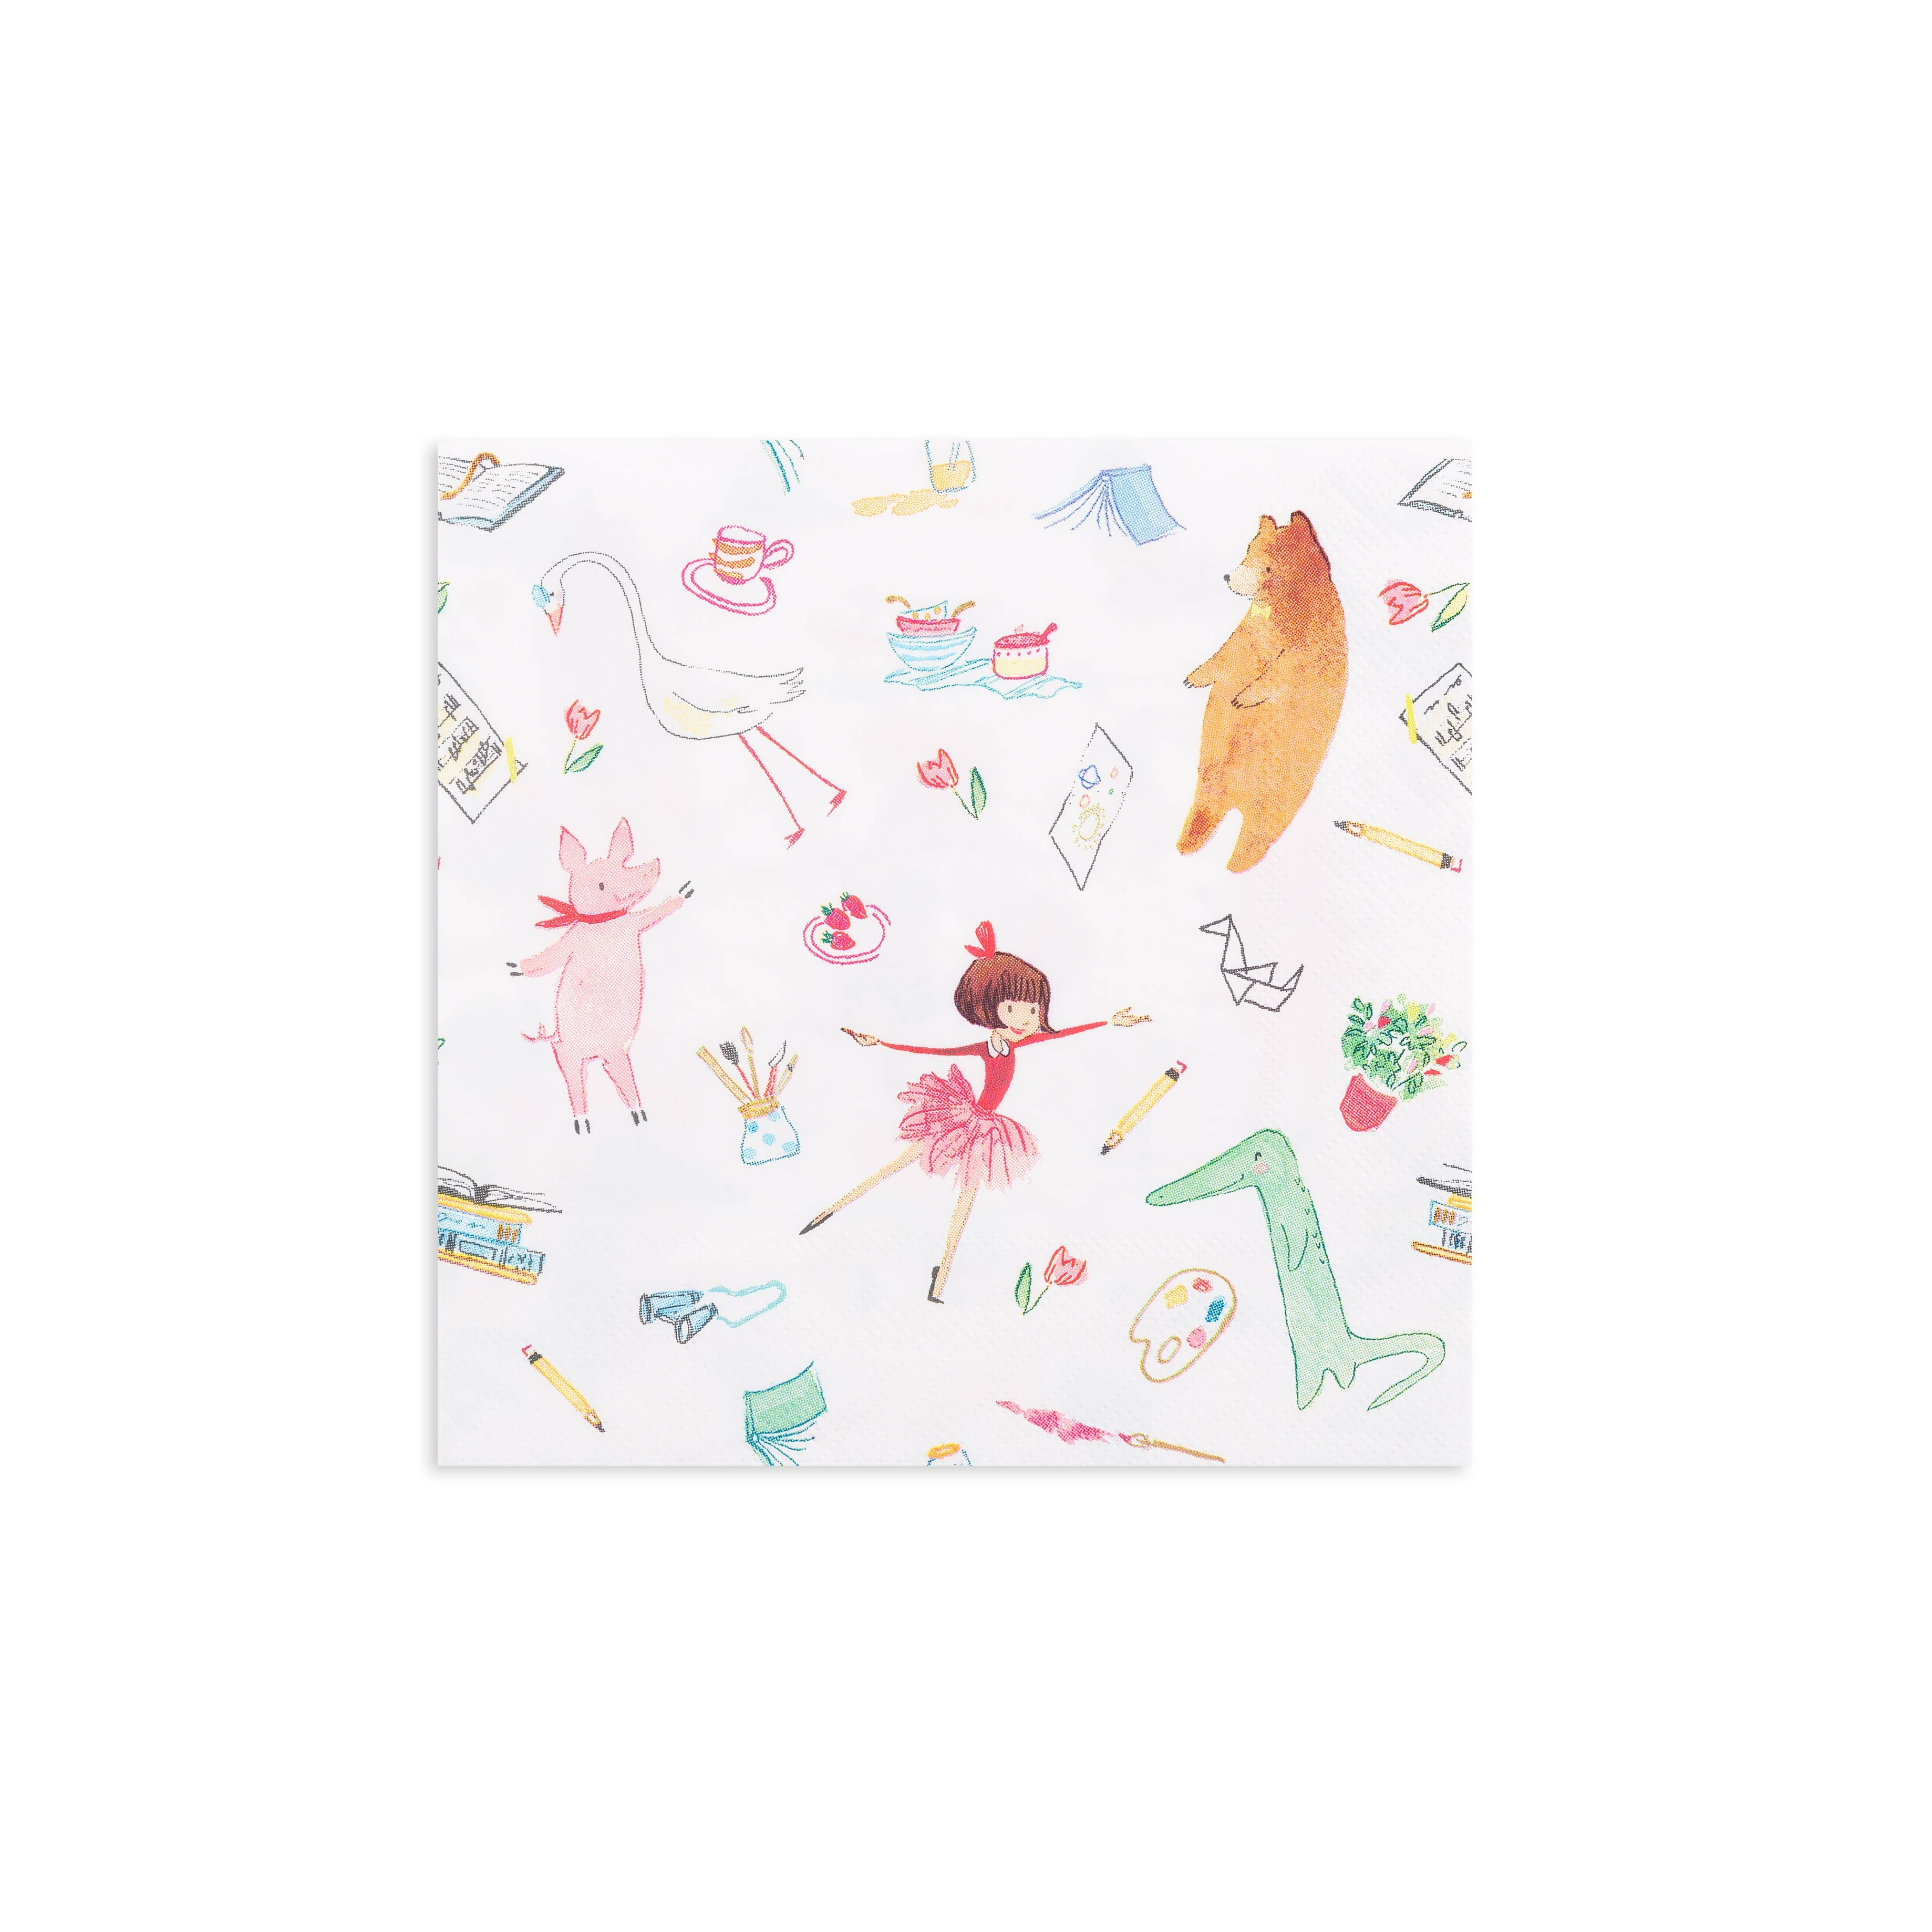 Lola Dutch Lola + Friends Large Napkins (Pack of 16)